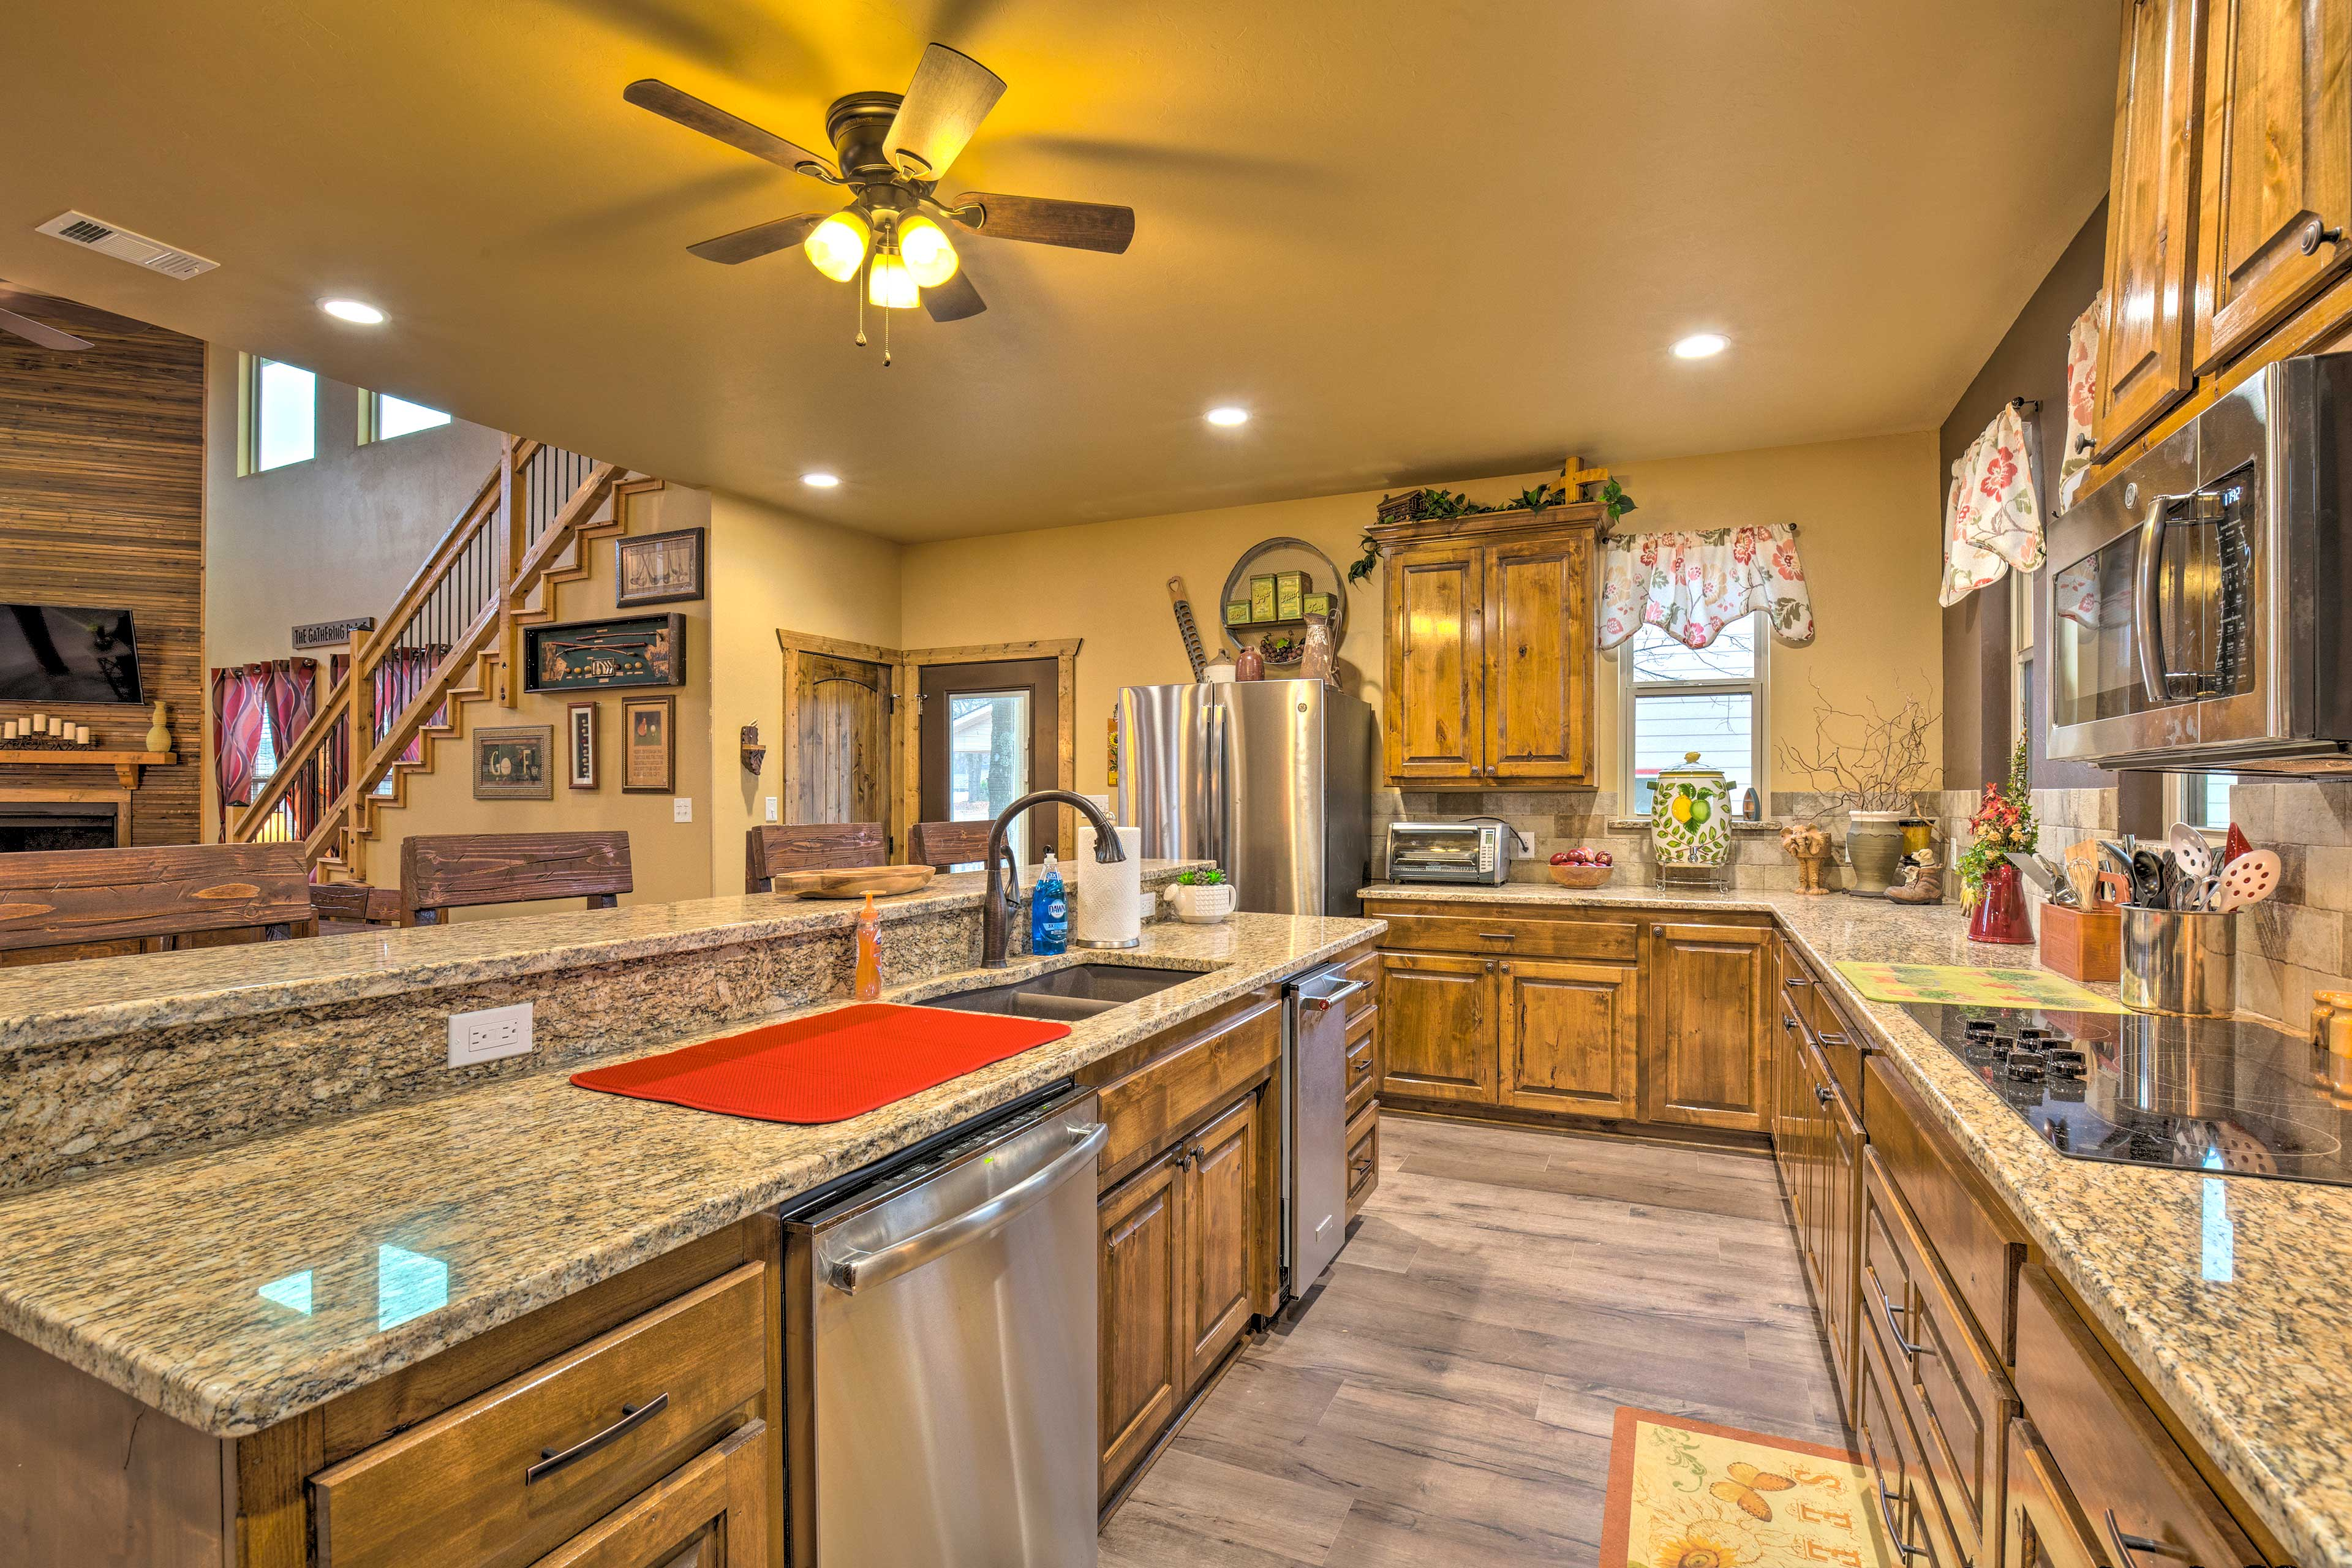 Chefs will love this spacious, fully equipped kitchen.